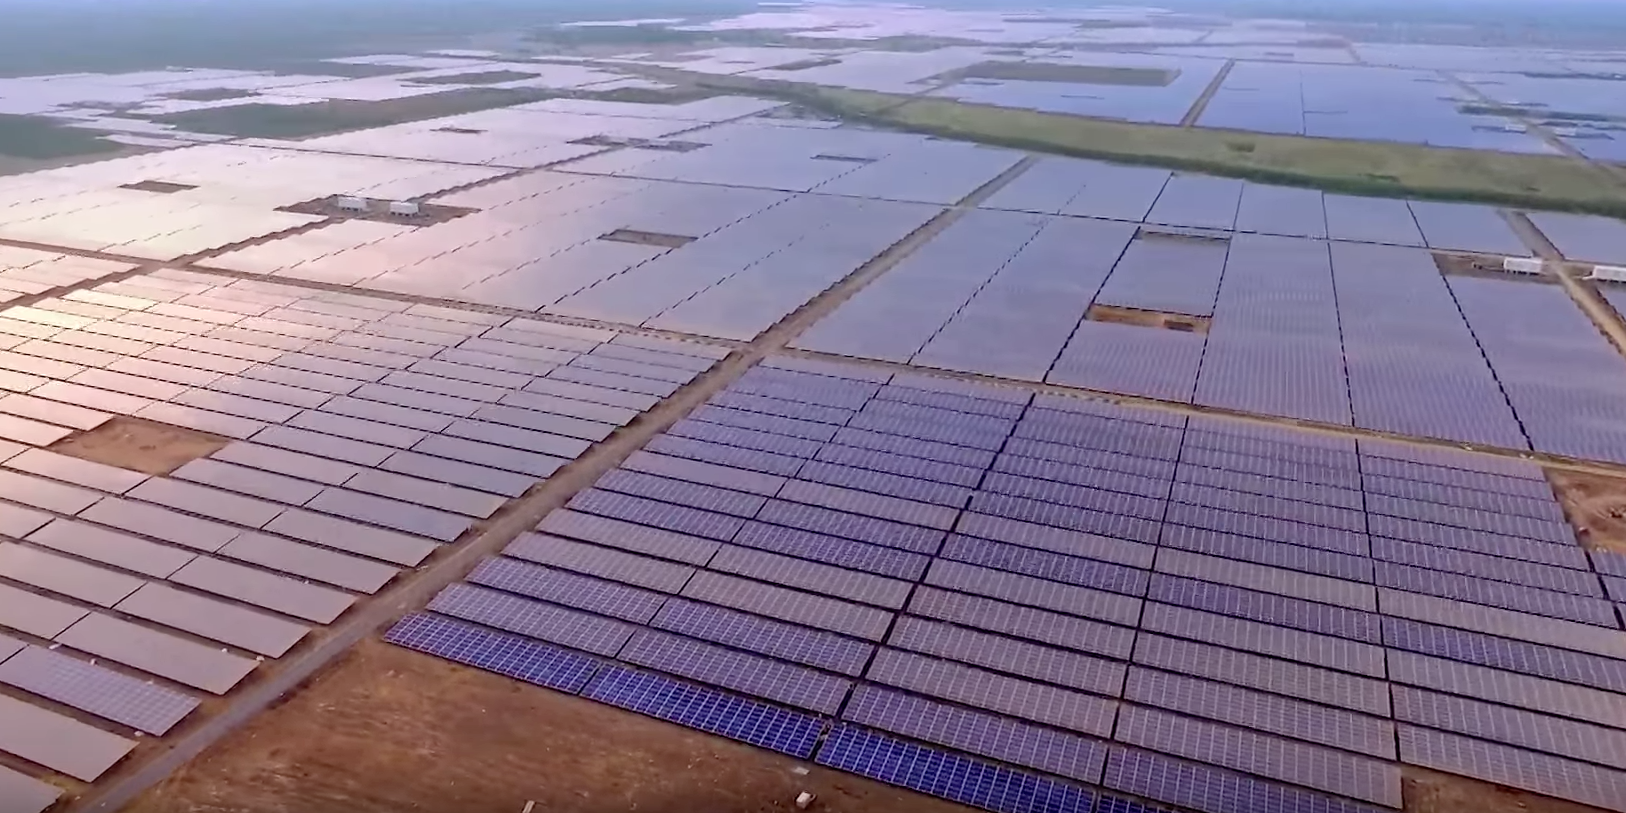 India's Massive Solar Plant Is Officially the Biggest Ever